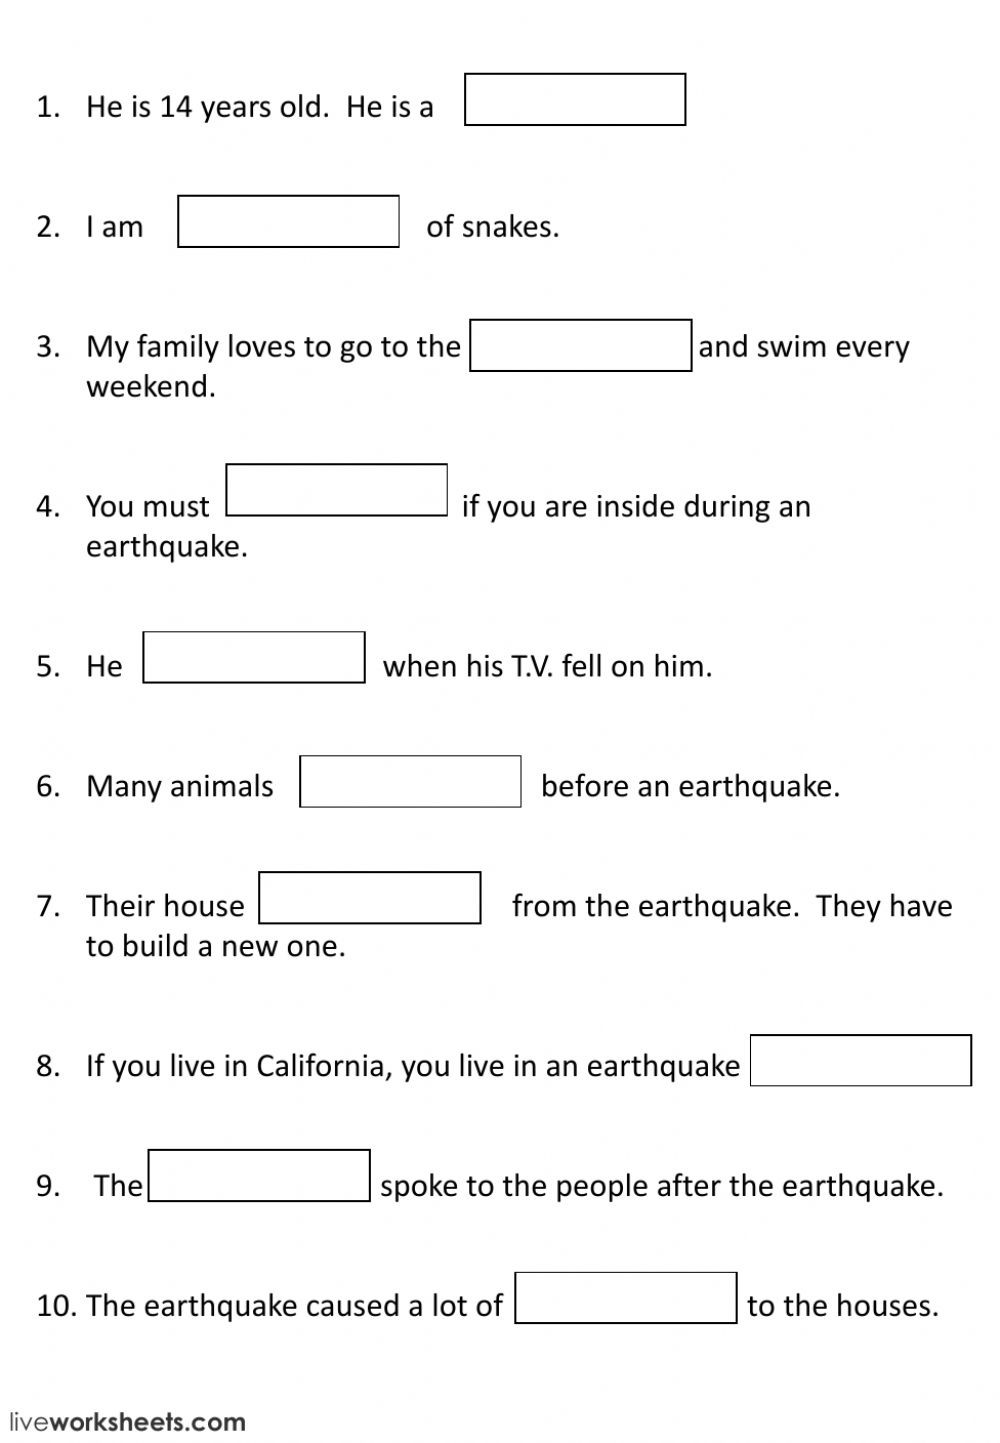 Earthquake Worksheets Middle School Natural Disaster Interactive Worksheet